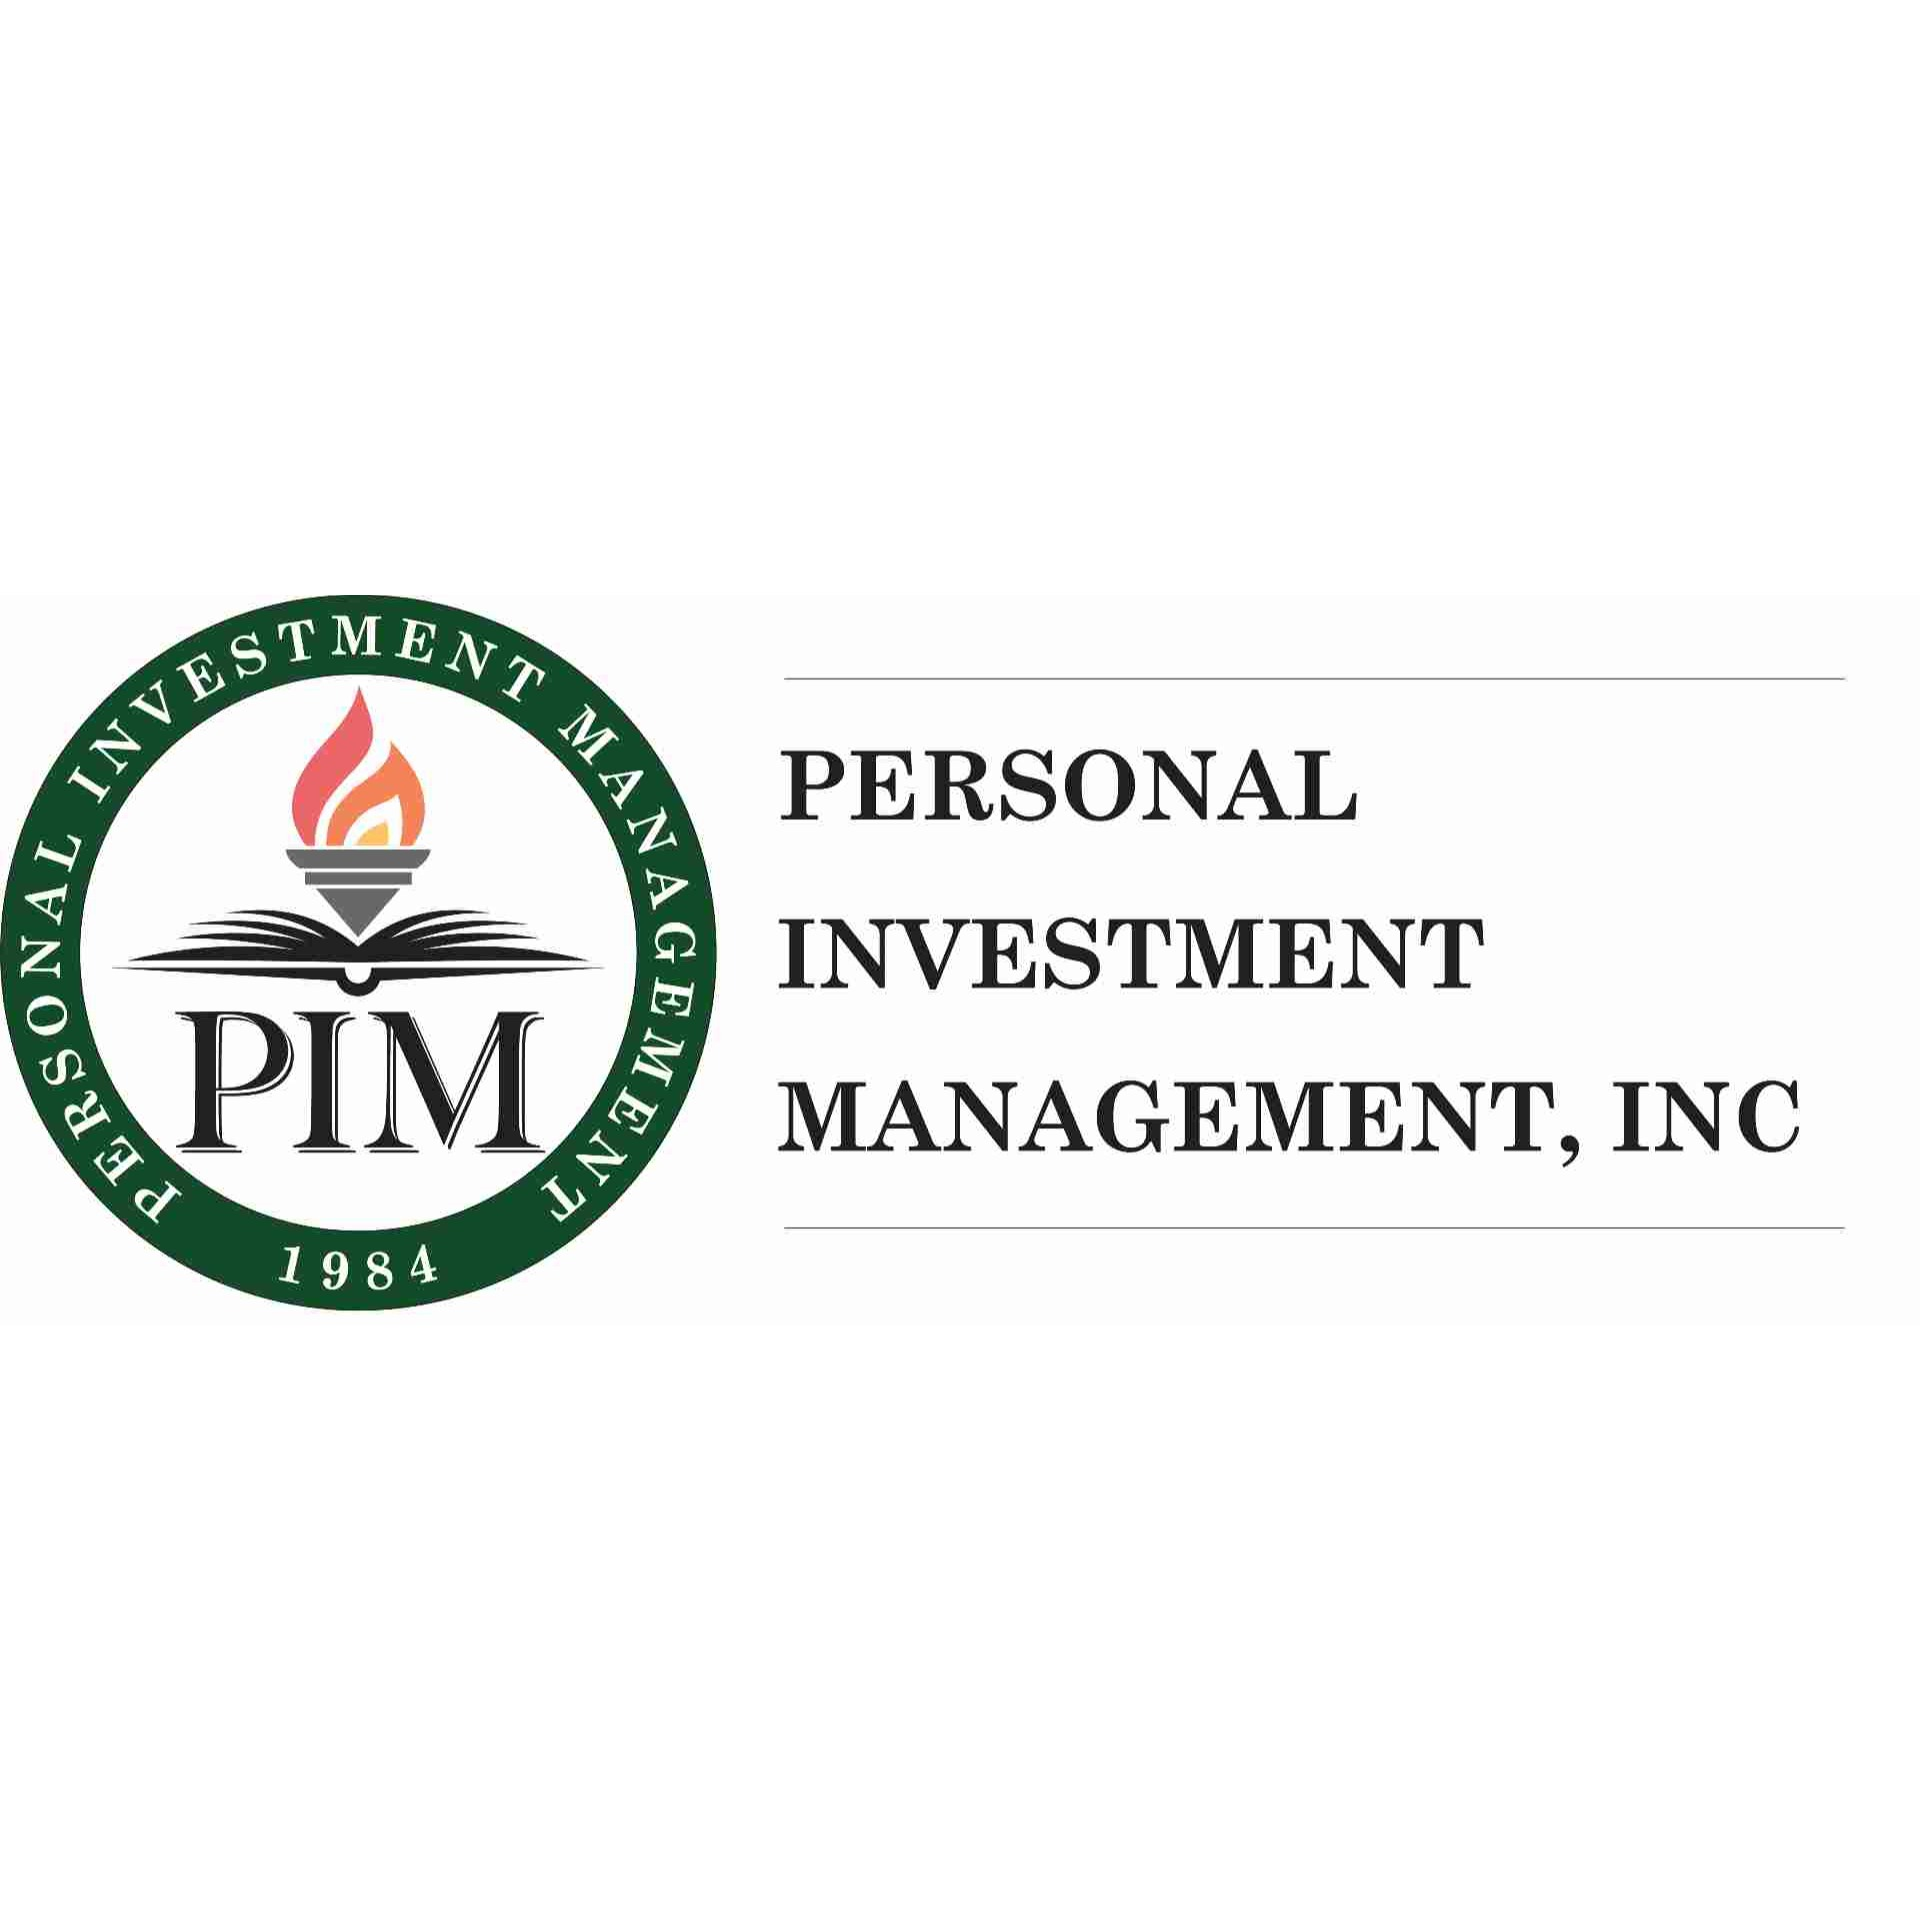 Personal Investment Management